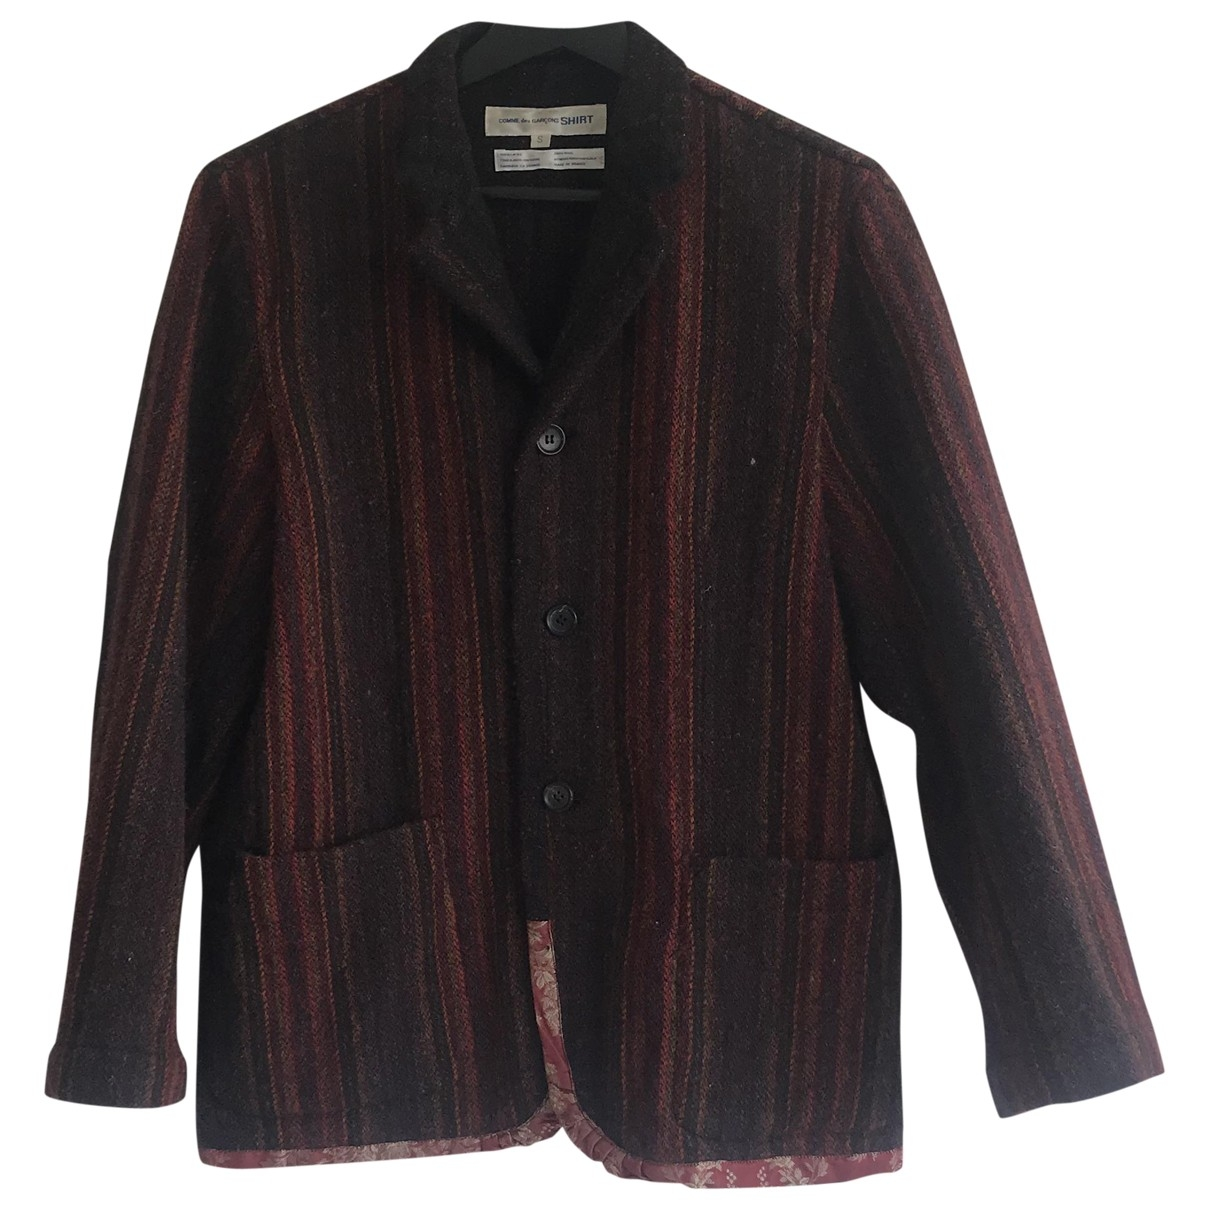 Comme Des Garcons \N Multicolour Wool jacket for Women S International